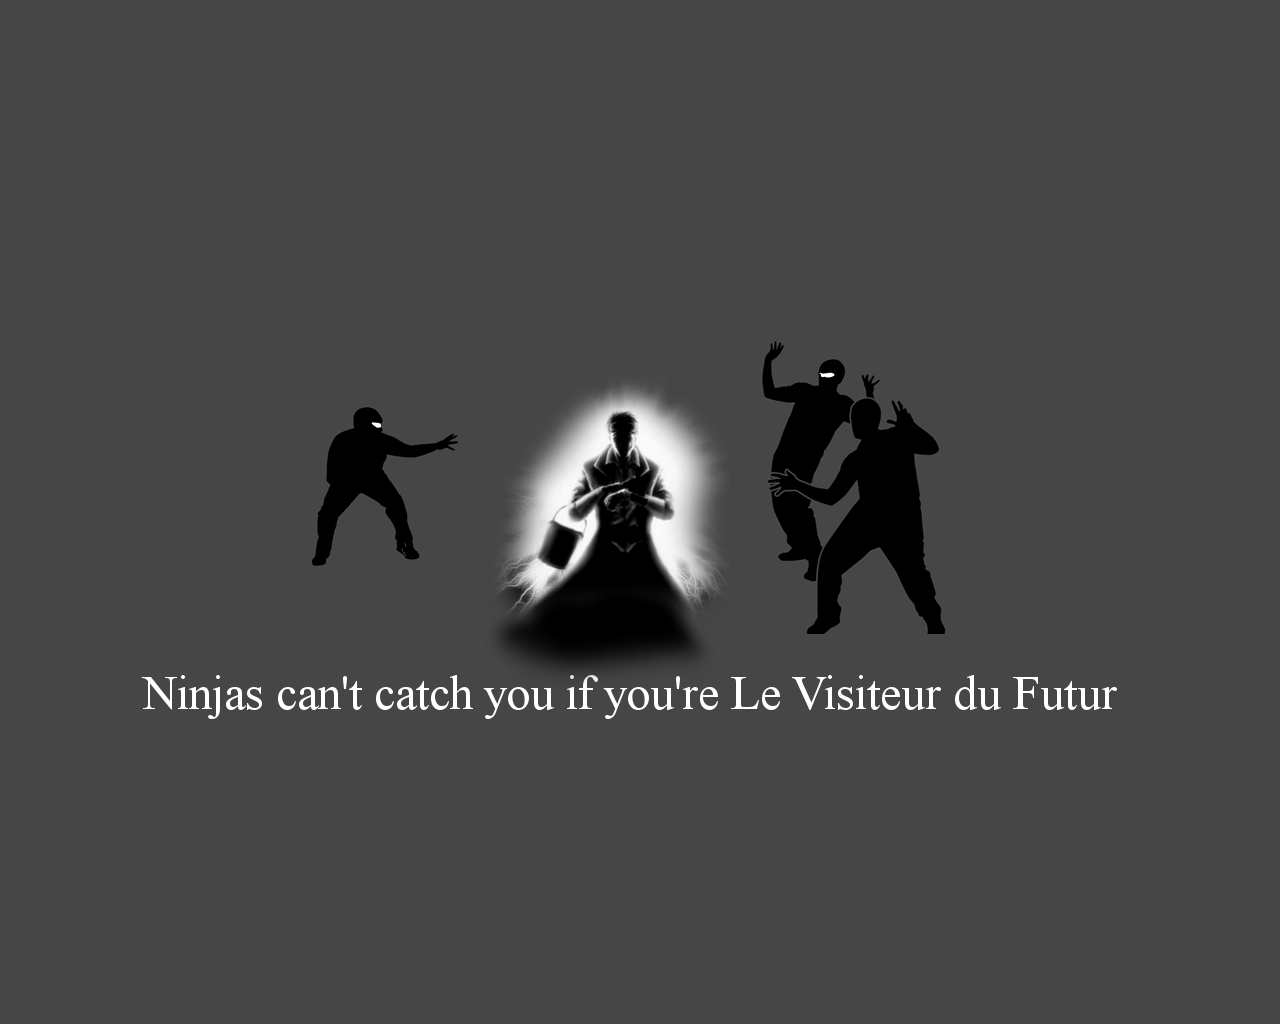 ninjas Future cant catch HD Wallpaper